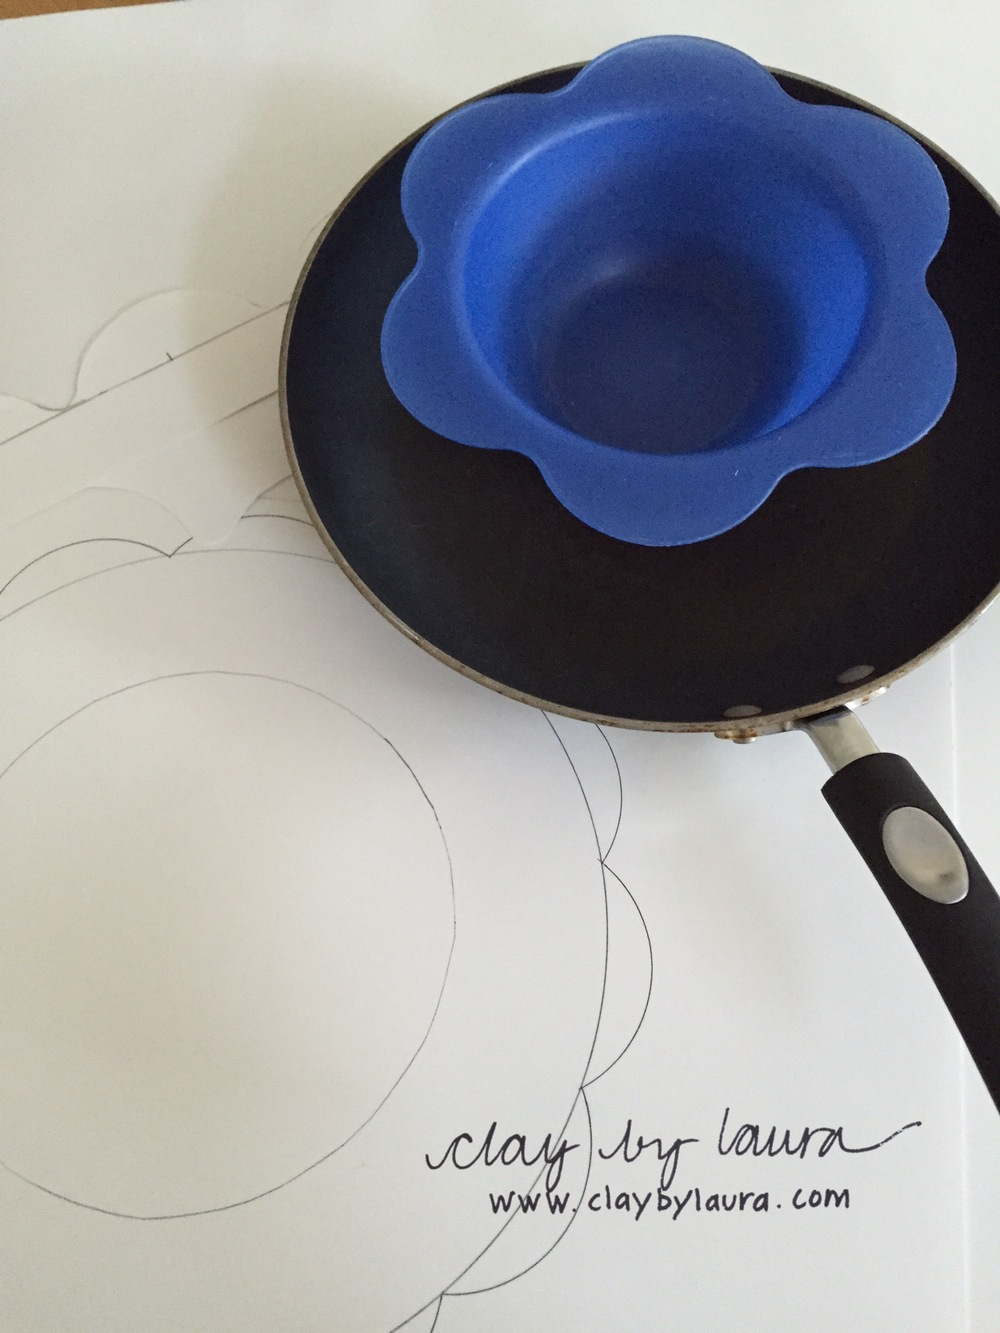 When I'm away from my studio and tools, it gives me an opportunity to look around my current environment and develop ideas with items that are on hand. Here, I've created a new template for some shapes I'll be working on using a frying pan and bowl.